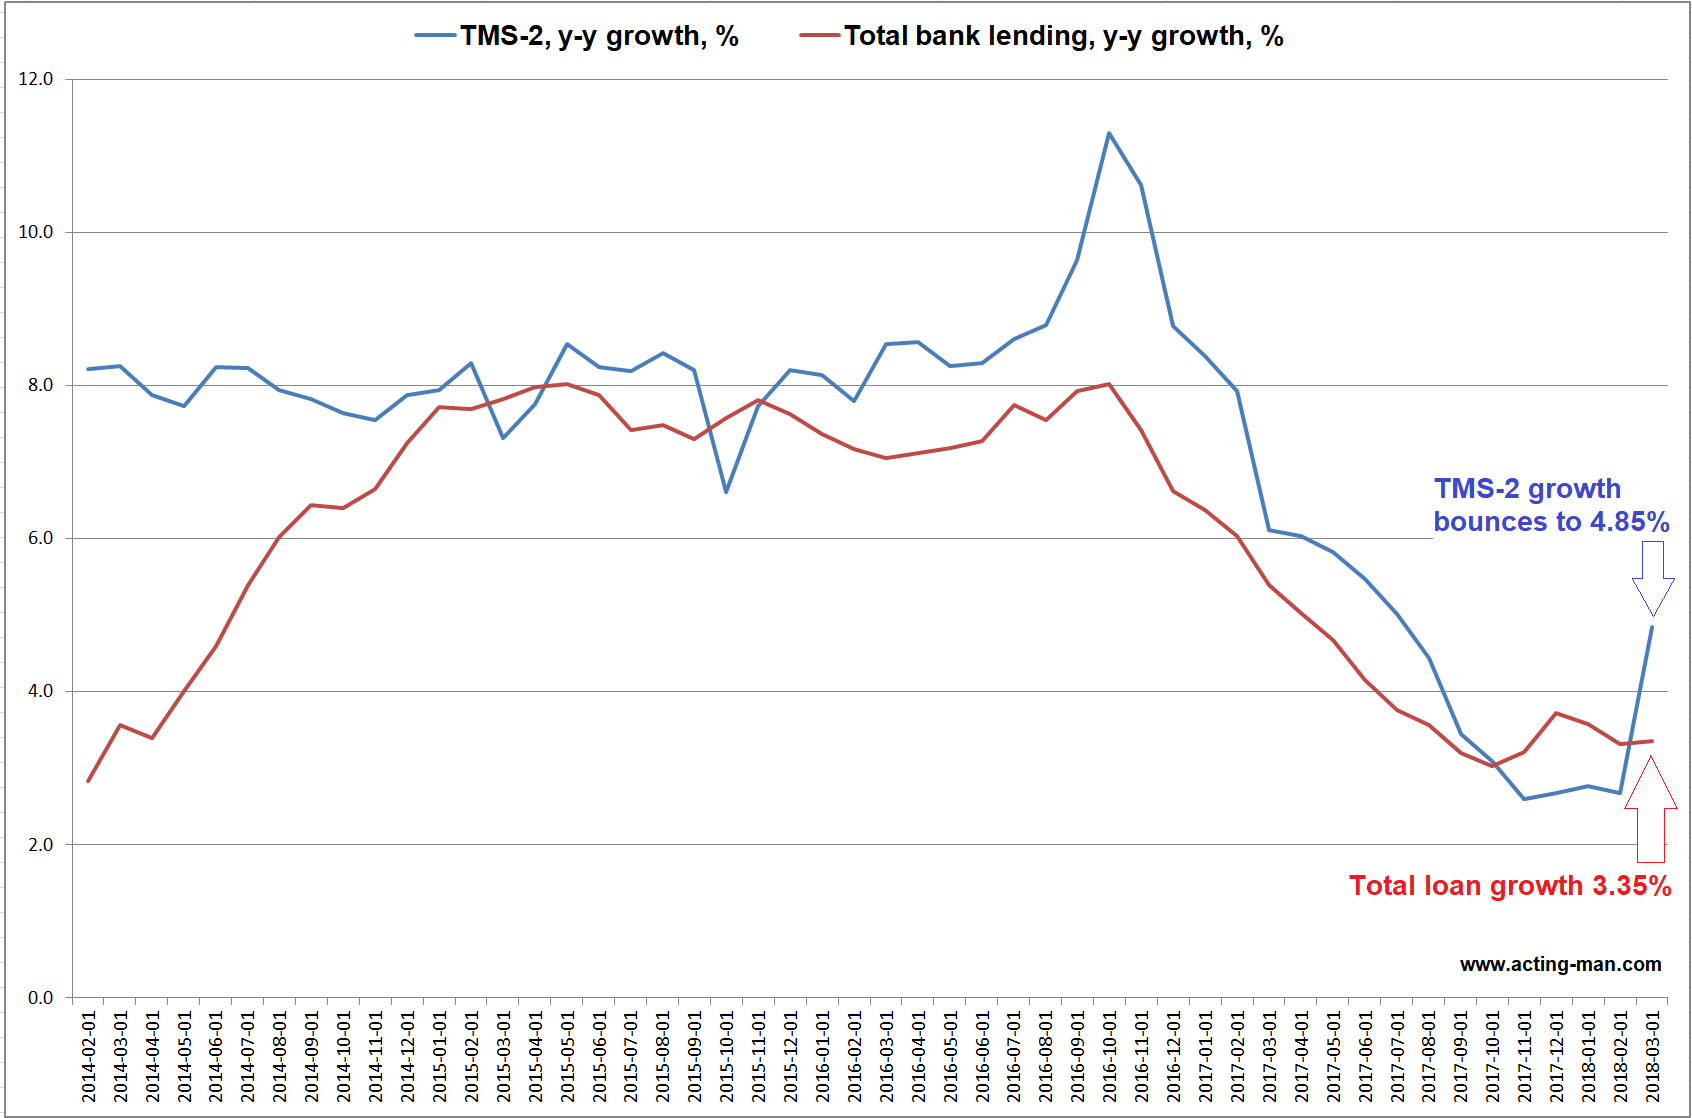 TMS-2 Growth and Total Bank Lending, Feb 2014 - Mar 2018